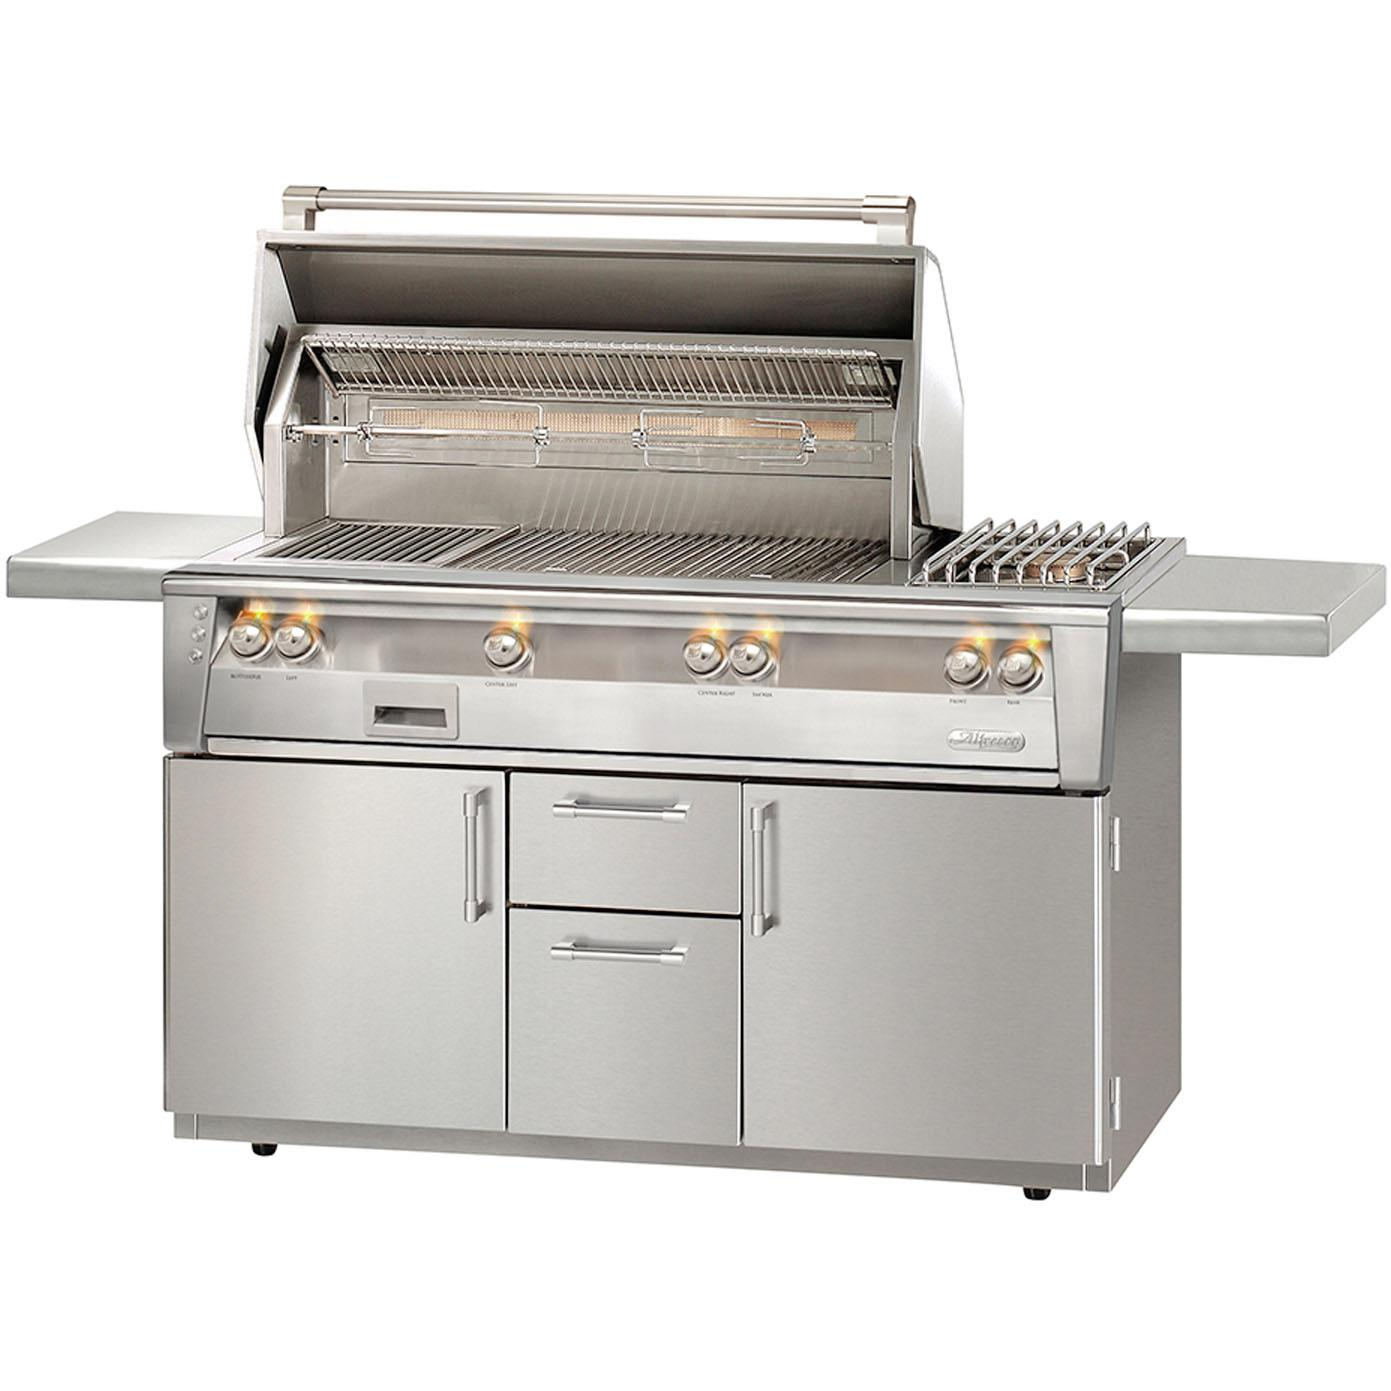 Alfresco LXE 56-Inch Propane Gas Deluxe Grill On Cart With Sear Zone, Rotisserie, And Side Burner - ALXE-56SZC-LP 2911942